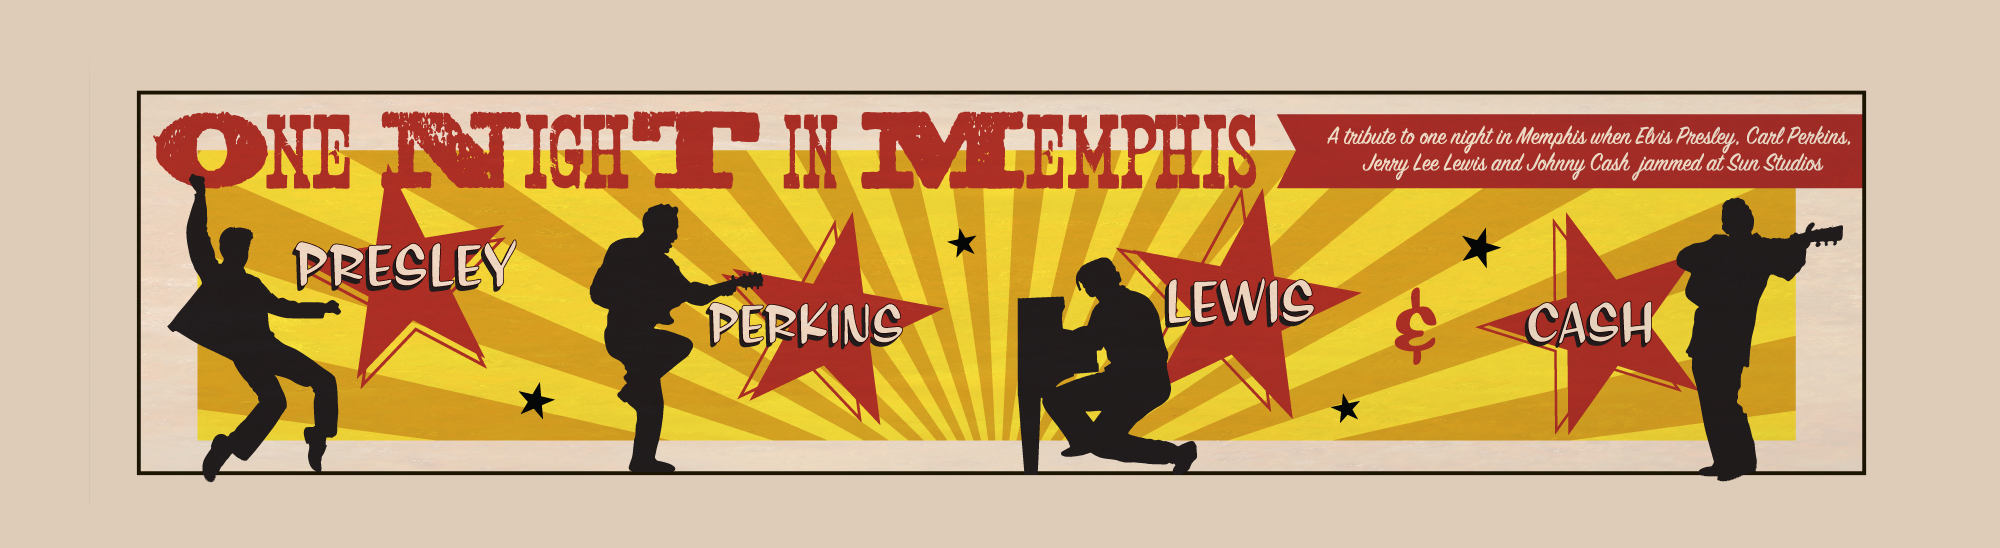 one-night-in-memphis-presley-perkins-lewis-cash